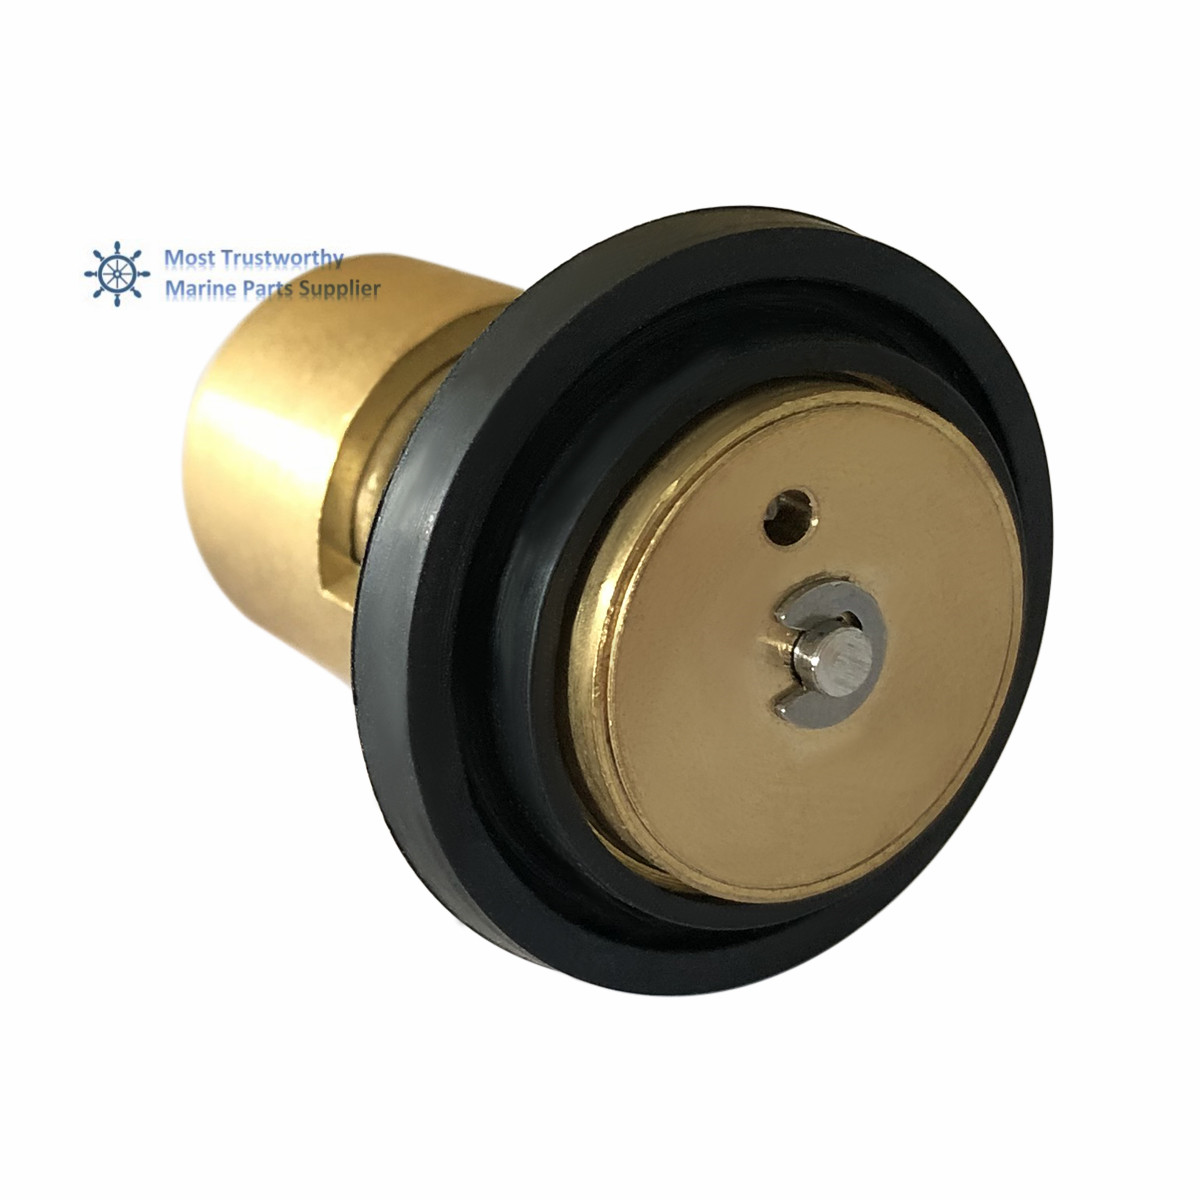 Thermostat for Yanmar replaces Yanmar 105582-49200